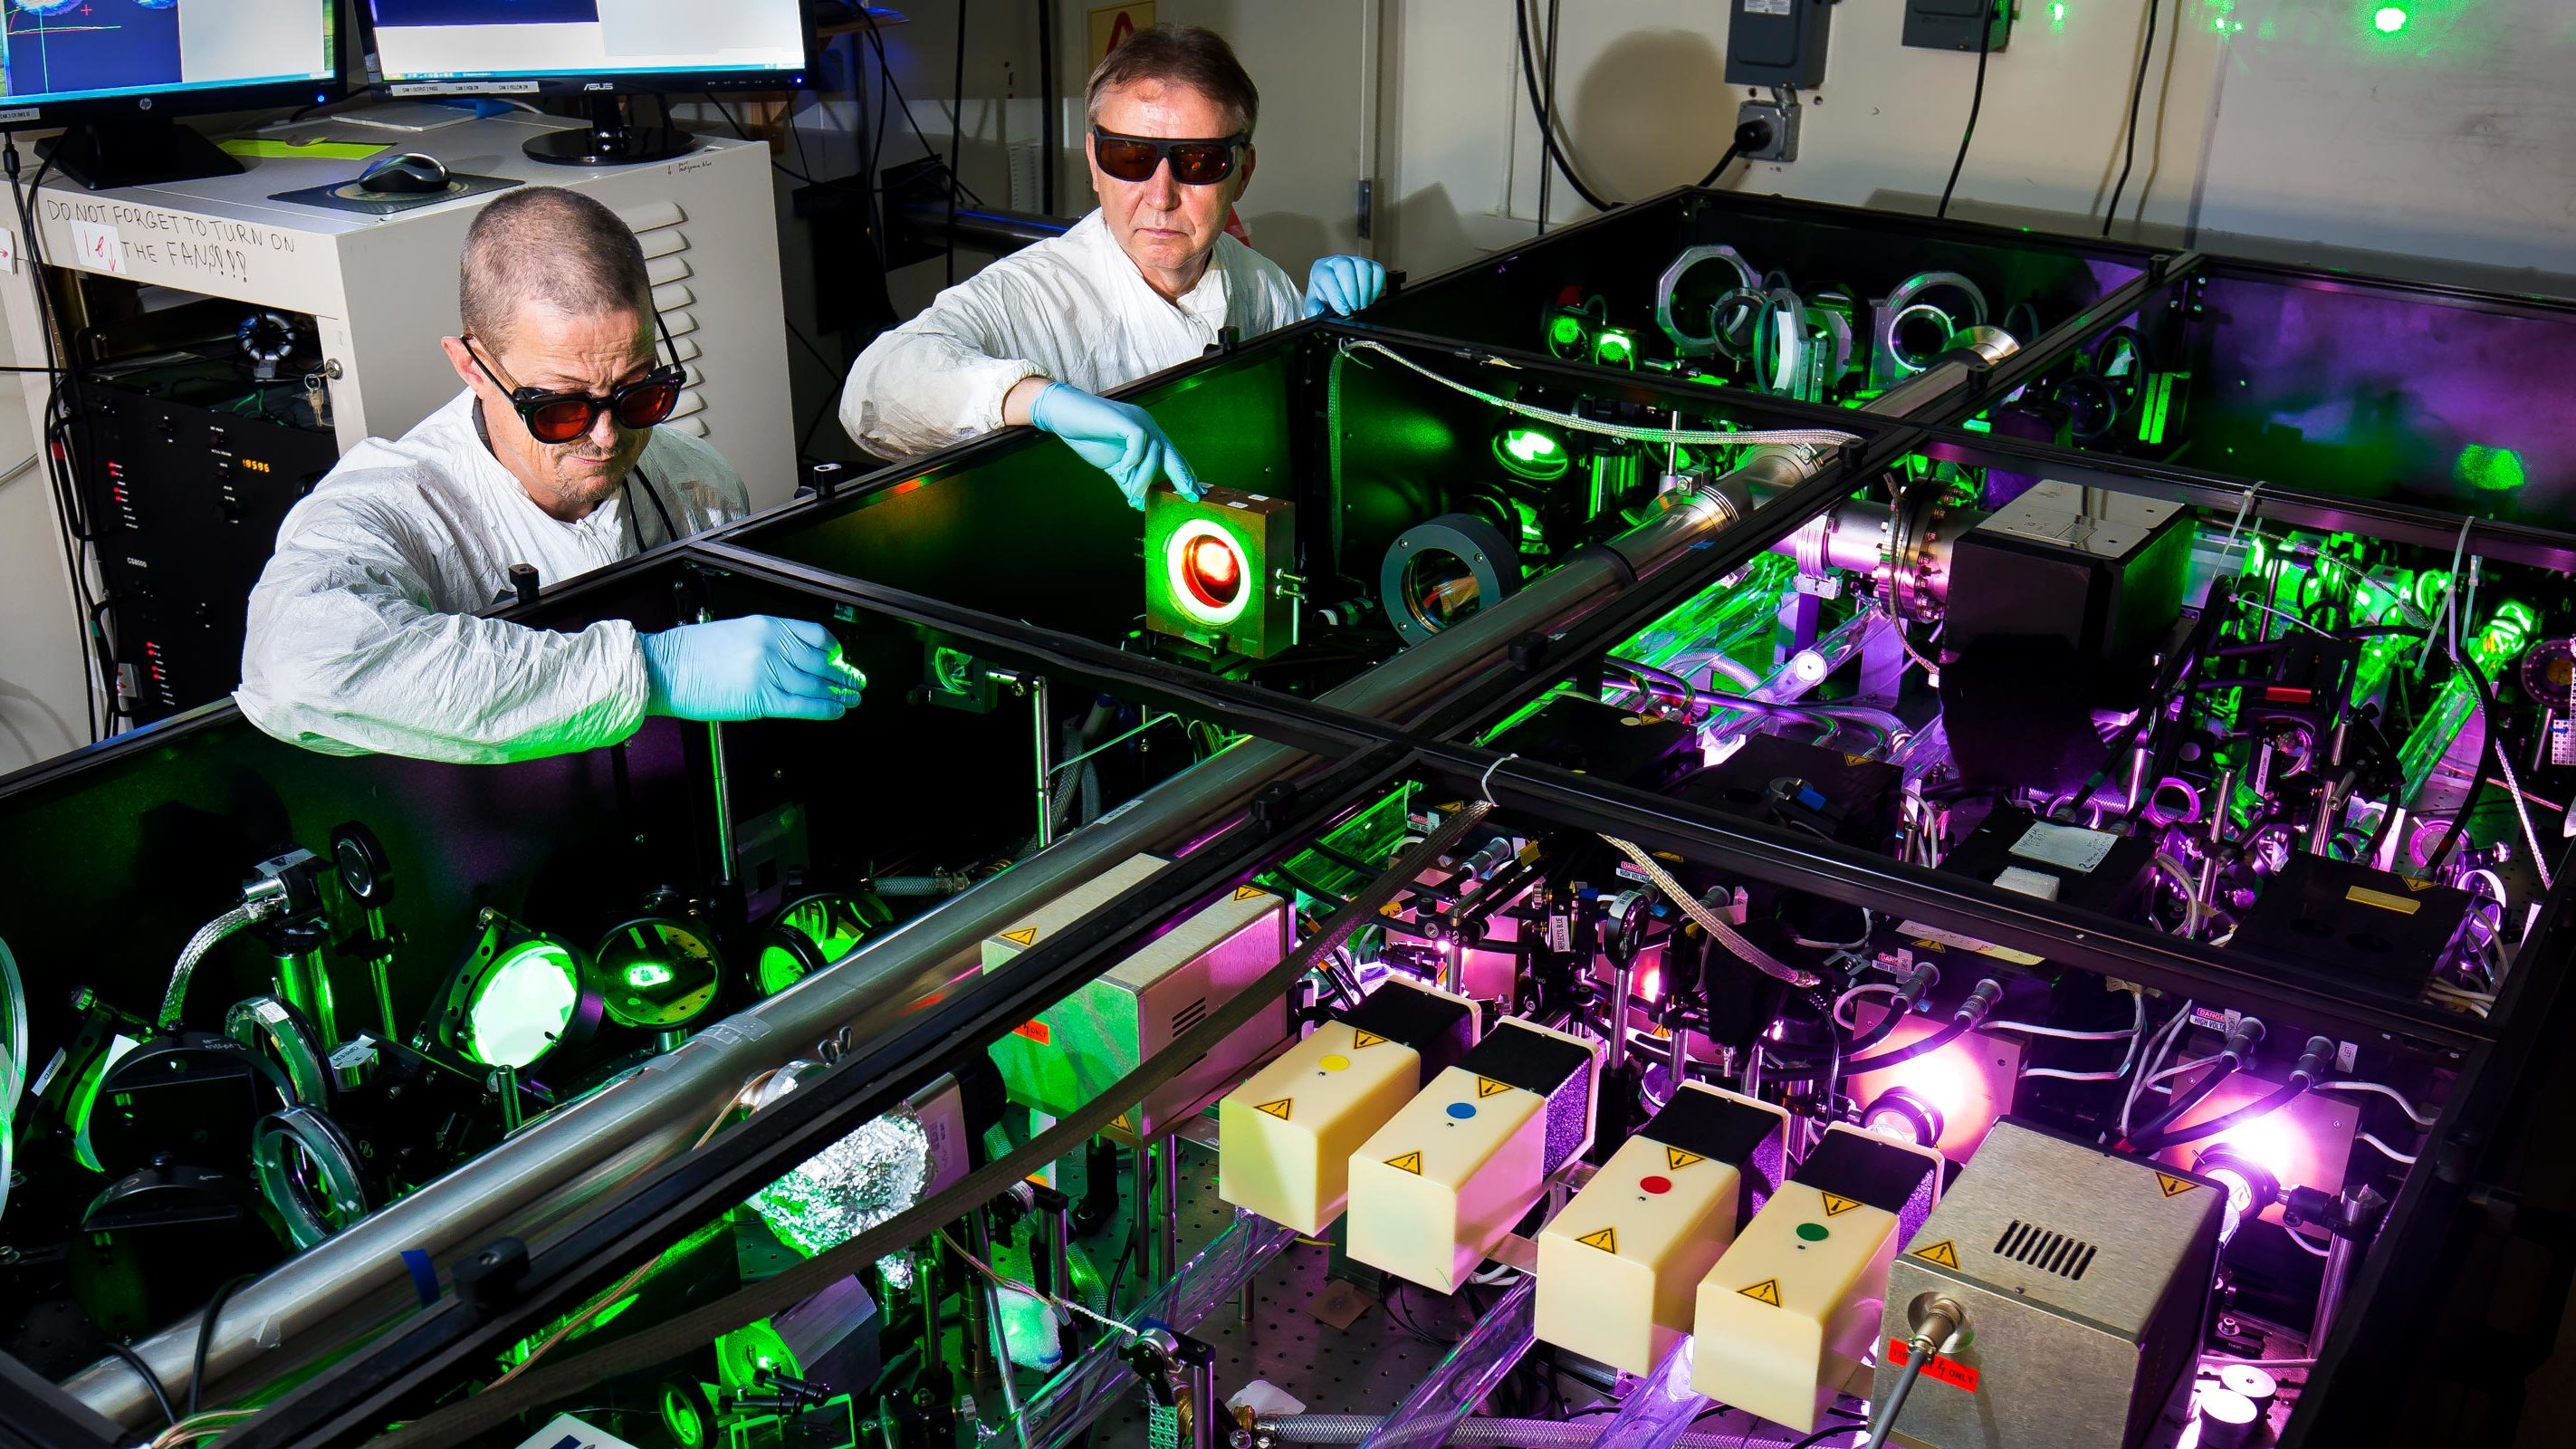 Doubling the power of the world's most intense laser